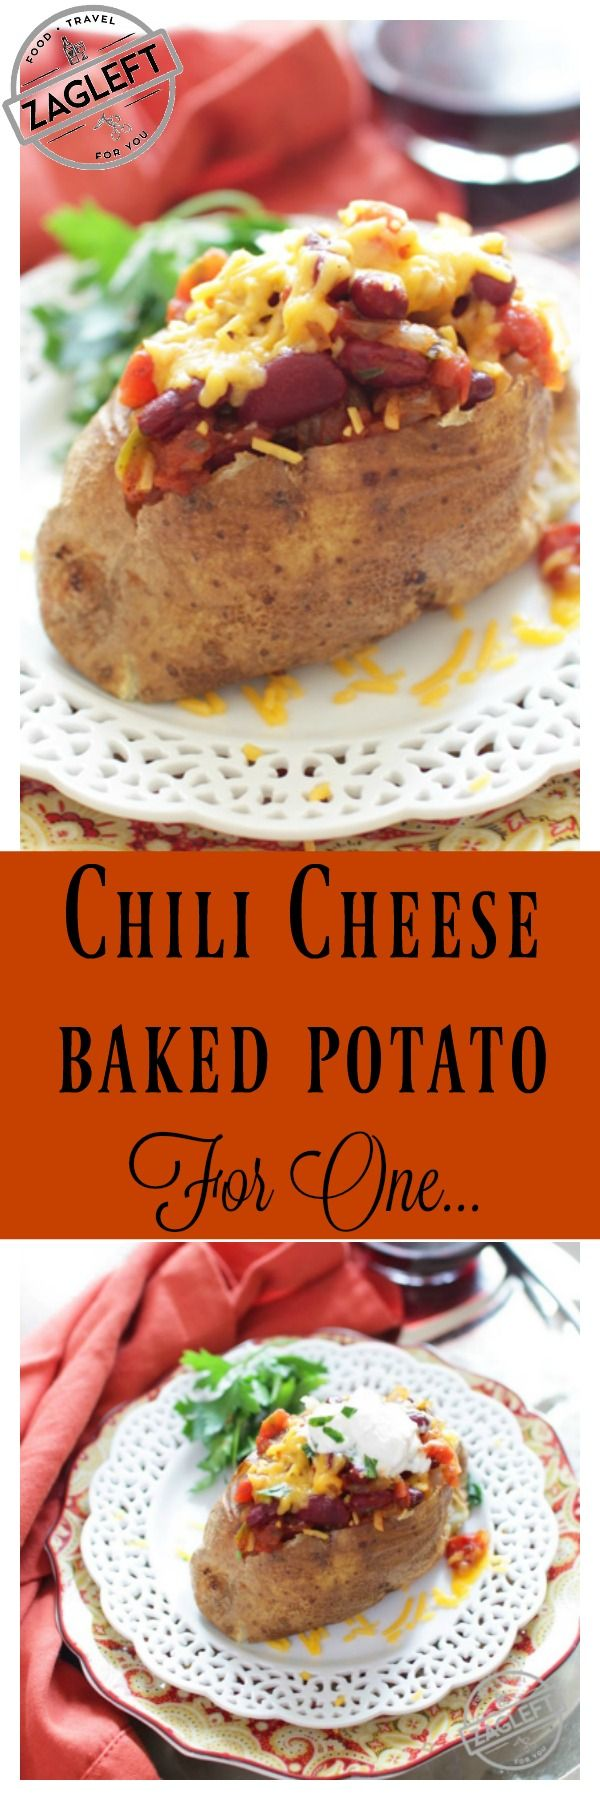 Chili Cheese Baked Potato loaded with sautéed onions and garlic, red beans, tomatoes and spices then topped with shredded cheddar cheese and sour cream.  This easy recipe is a hearty and delicious Recipe For One!  | zagleft.com